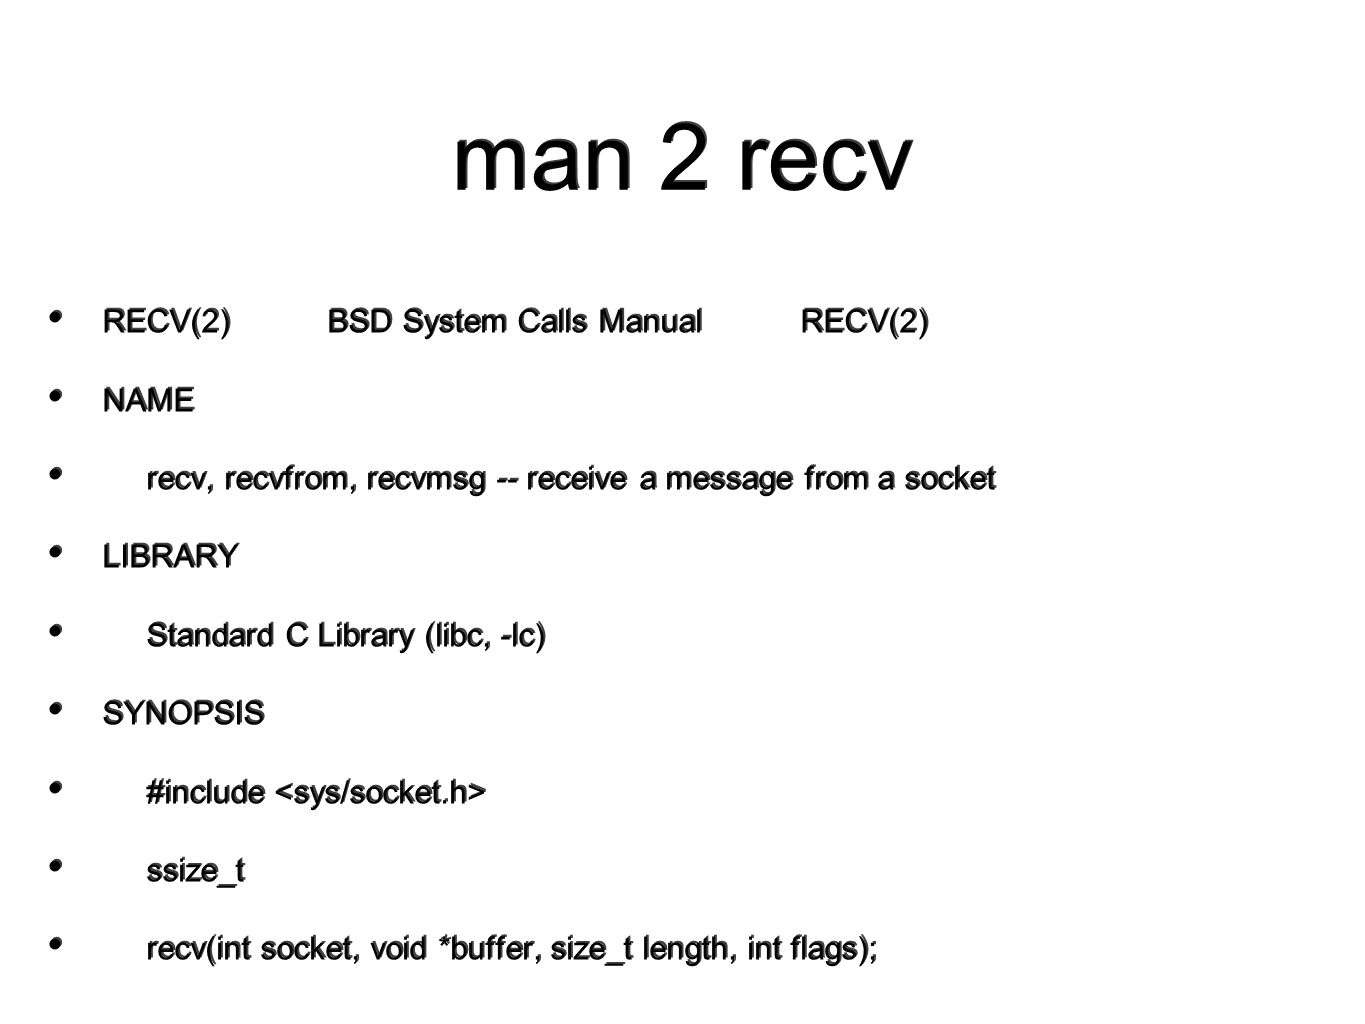 man 2 recv RECV(2) BSD System Calls Manual RECV(2) NAME recv, recvfrom, recvmsg -- receive a message from a socket LIBRARY Standard C Library (libc, -lc) SYNOPSIS #include ssize_t recv(int socket, void *buffer, size_t length, int flags); RECV(2) BSD System Calls Manual RECV(2) NAME recv, recvfrom, recvmsg -- receive a message from a socket LIBRARY Standard C Library (libc, -lc) SYNOPSIS #include ssize_t recv(int socket, void *buffer, size_t length, int flags);